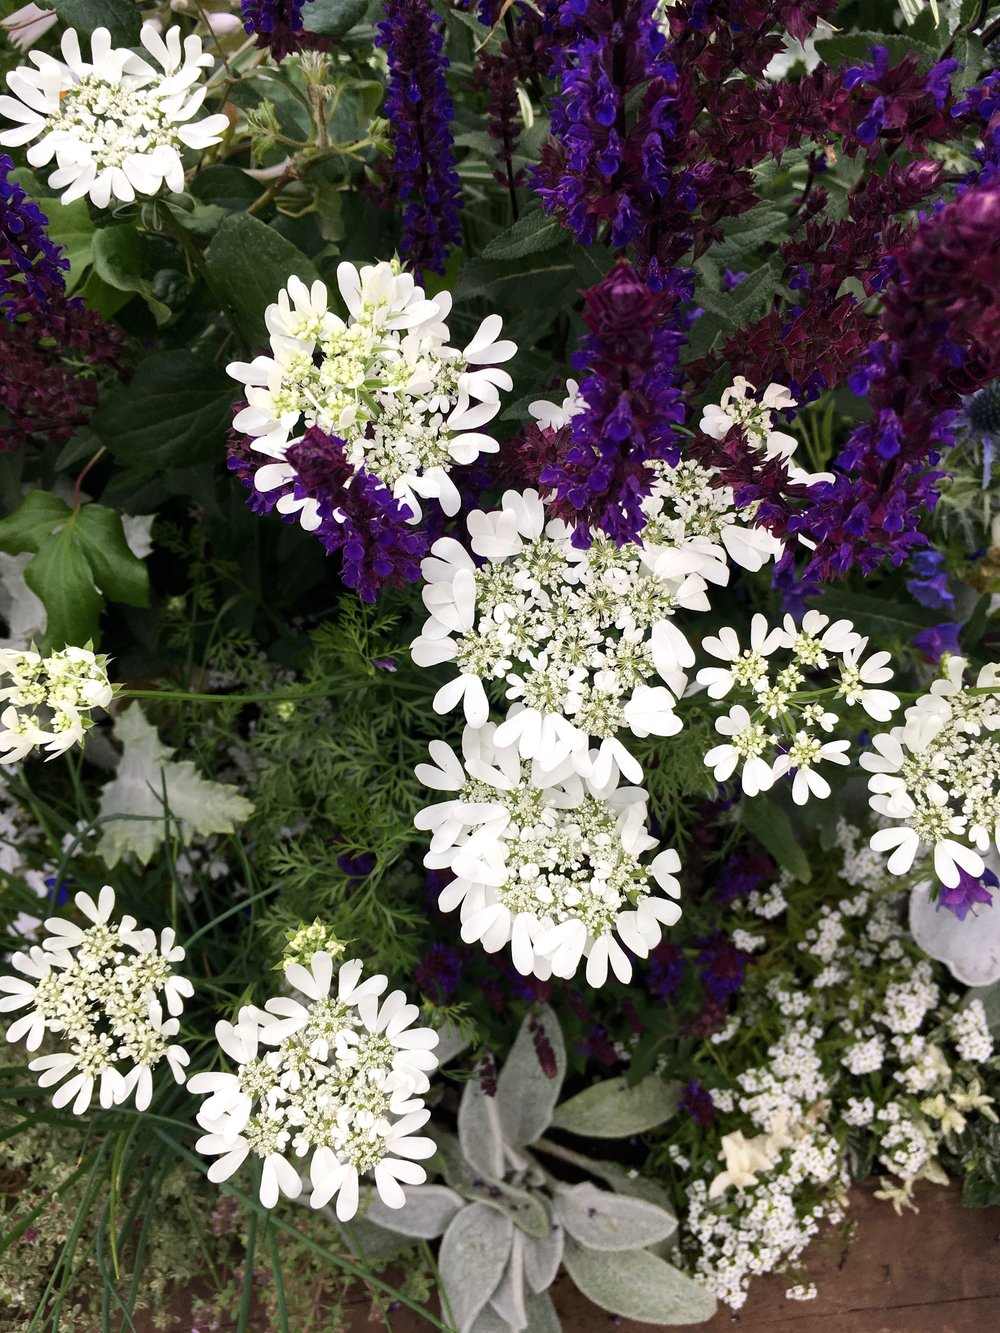 Astrantias in the Chronicles of Narnia beautiful border